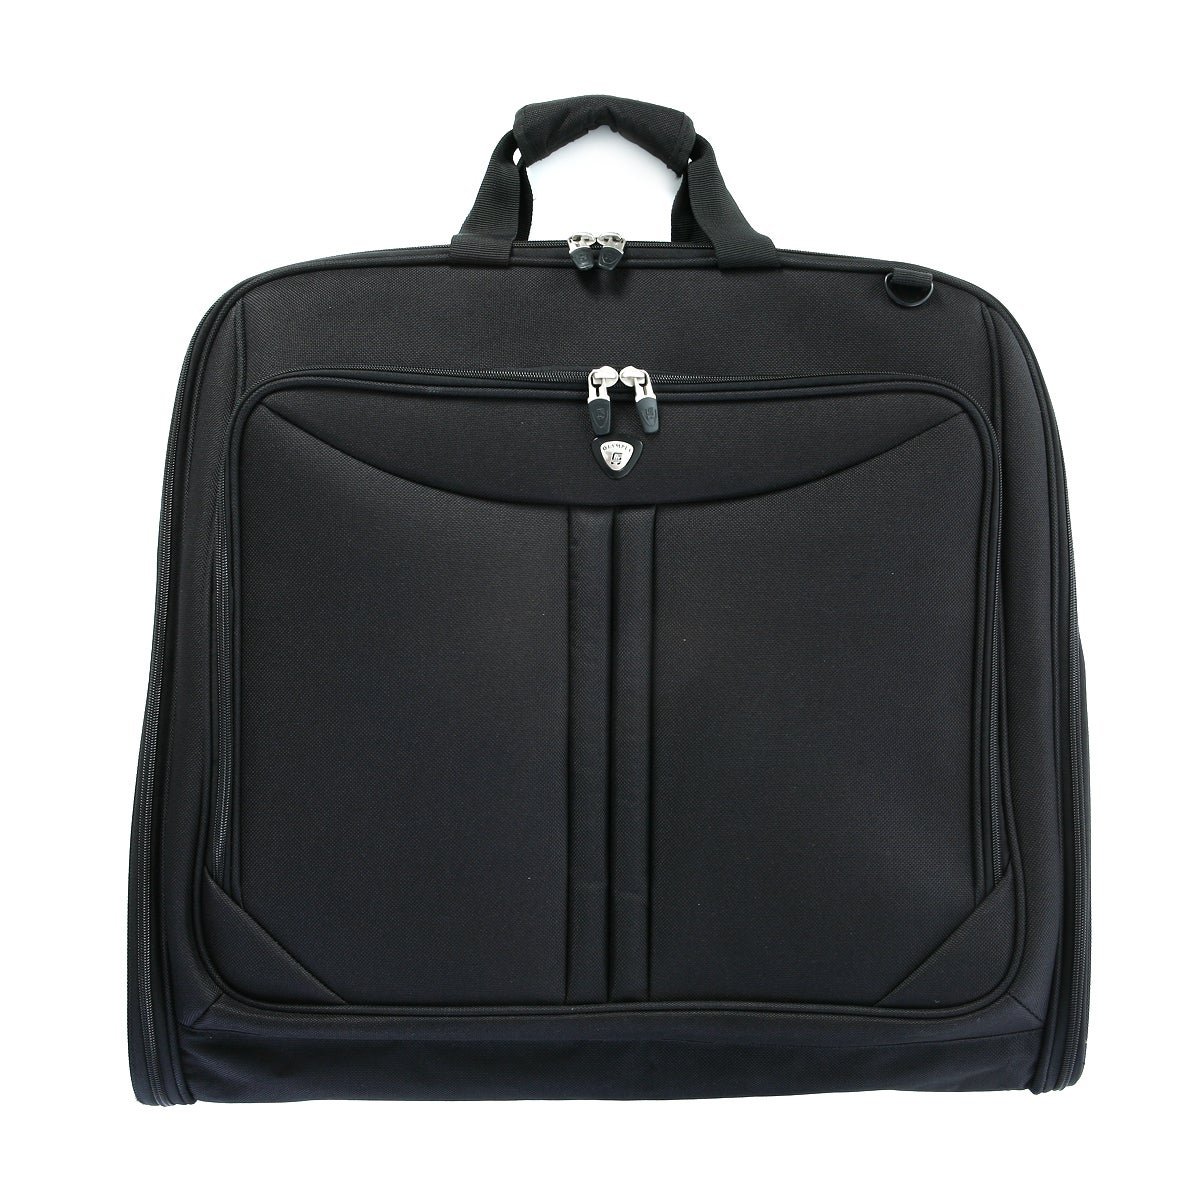 05167519b3 Shop Olympia Vector Folding Garment Bag - Free Shipping Today - Overstock -  2117892